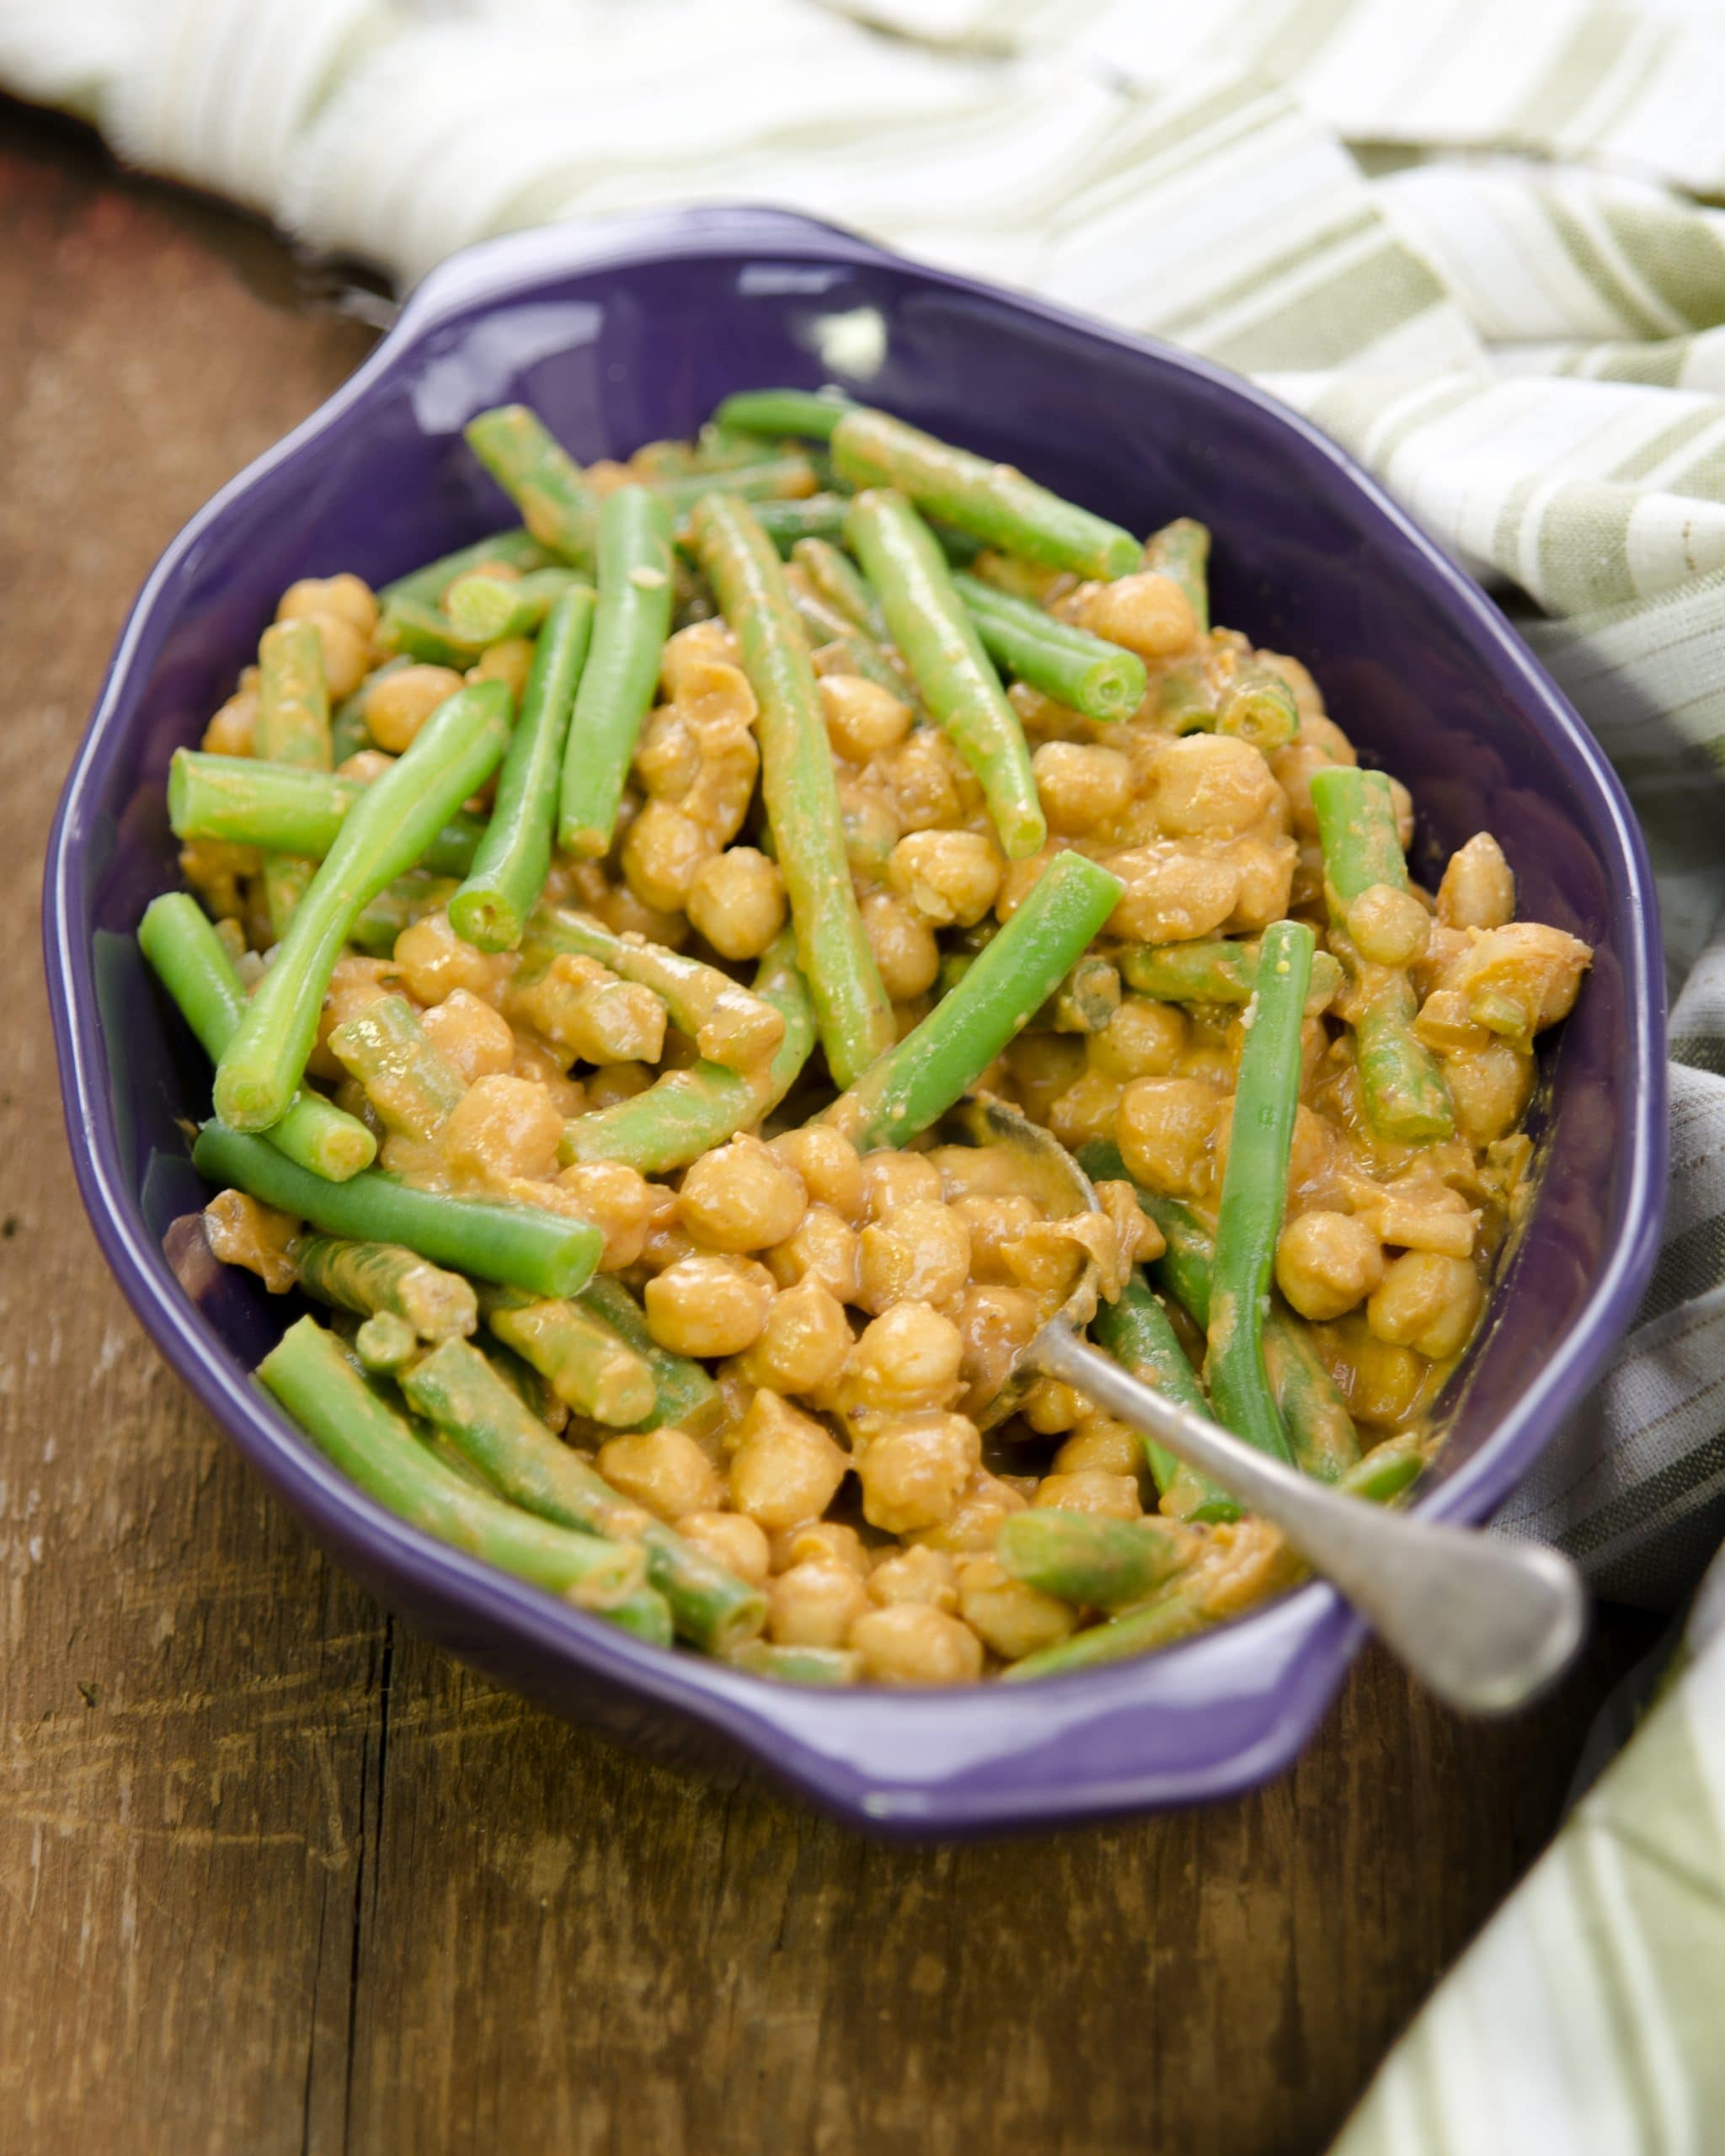 Saucy Chickpeas & Green Beans in Casserole Dish with Serving Spoon